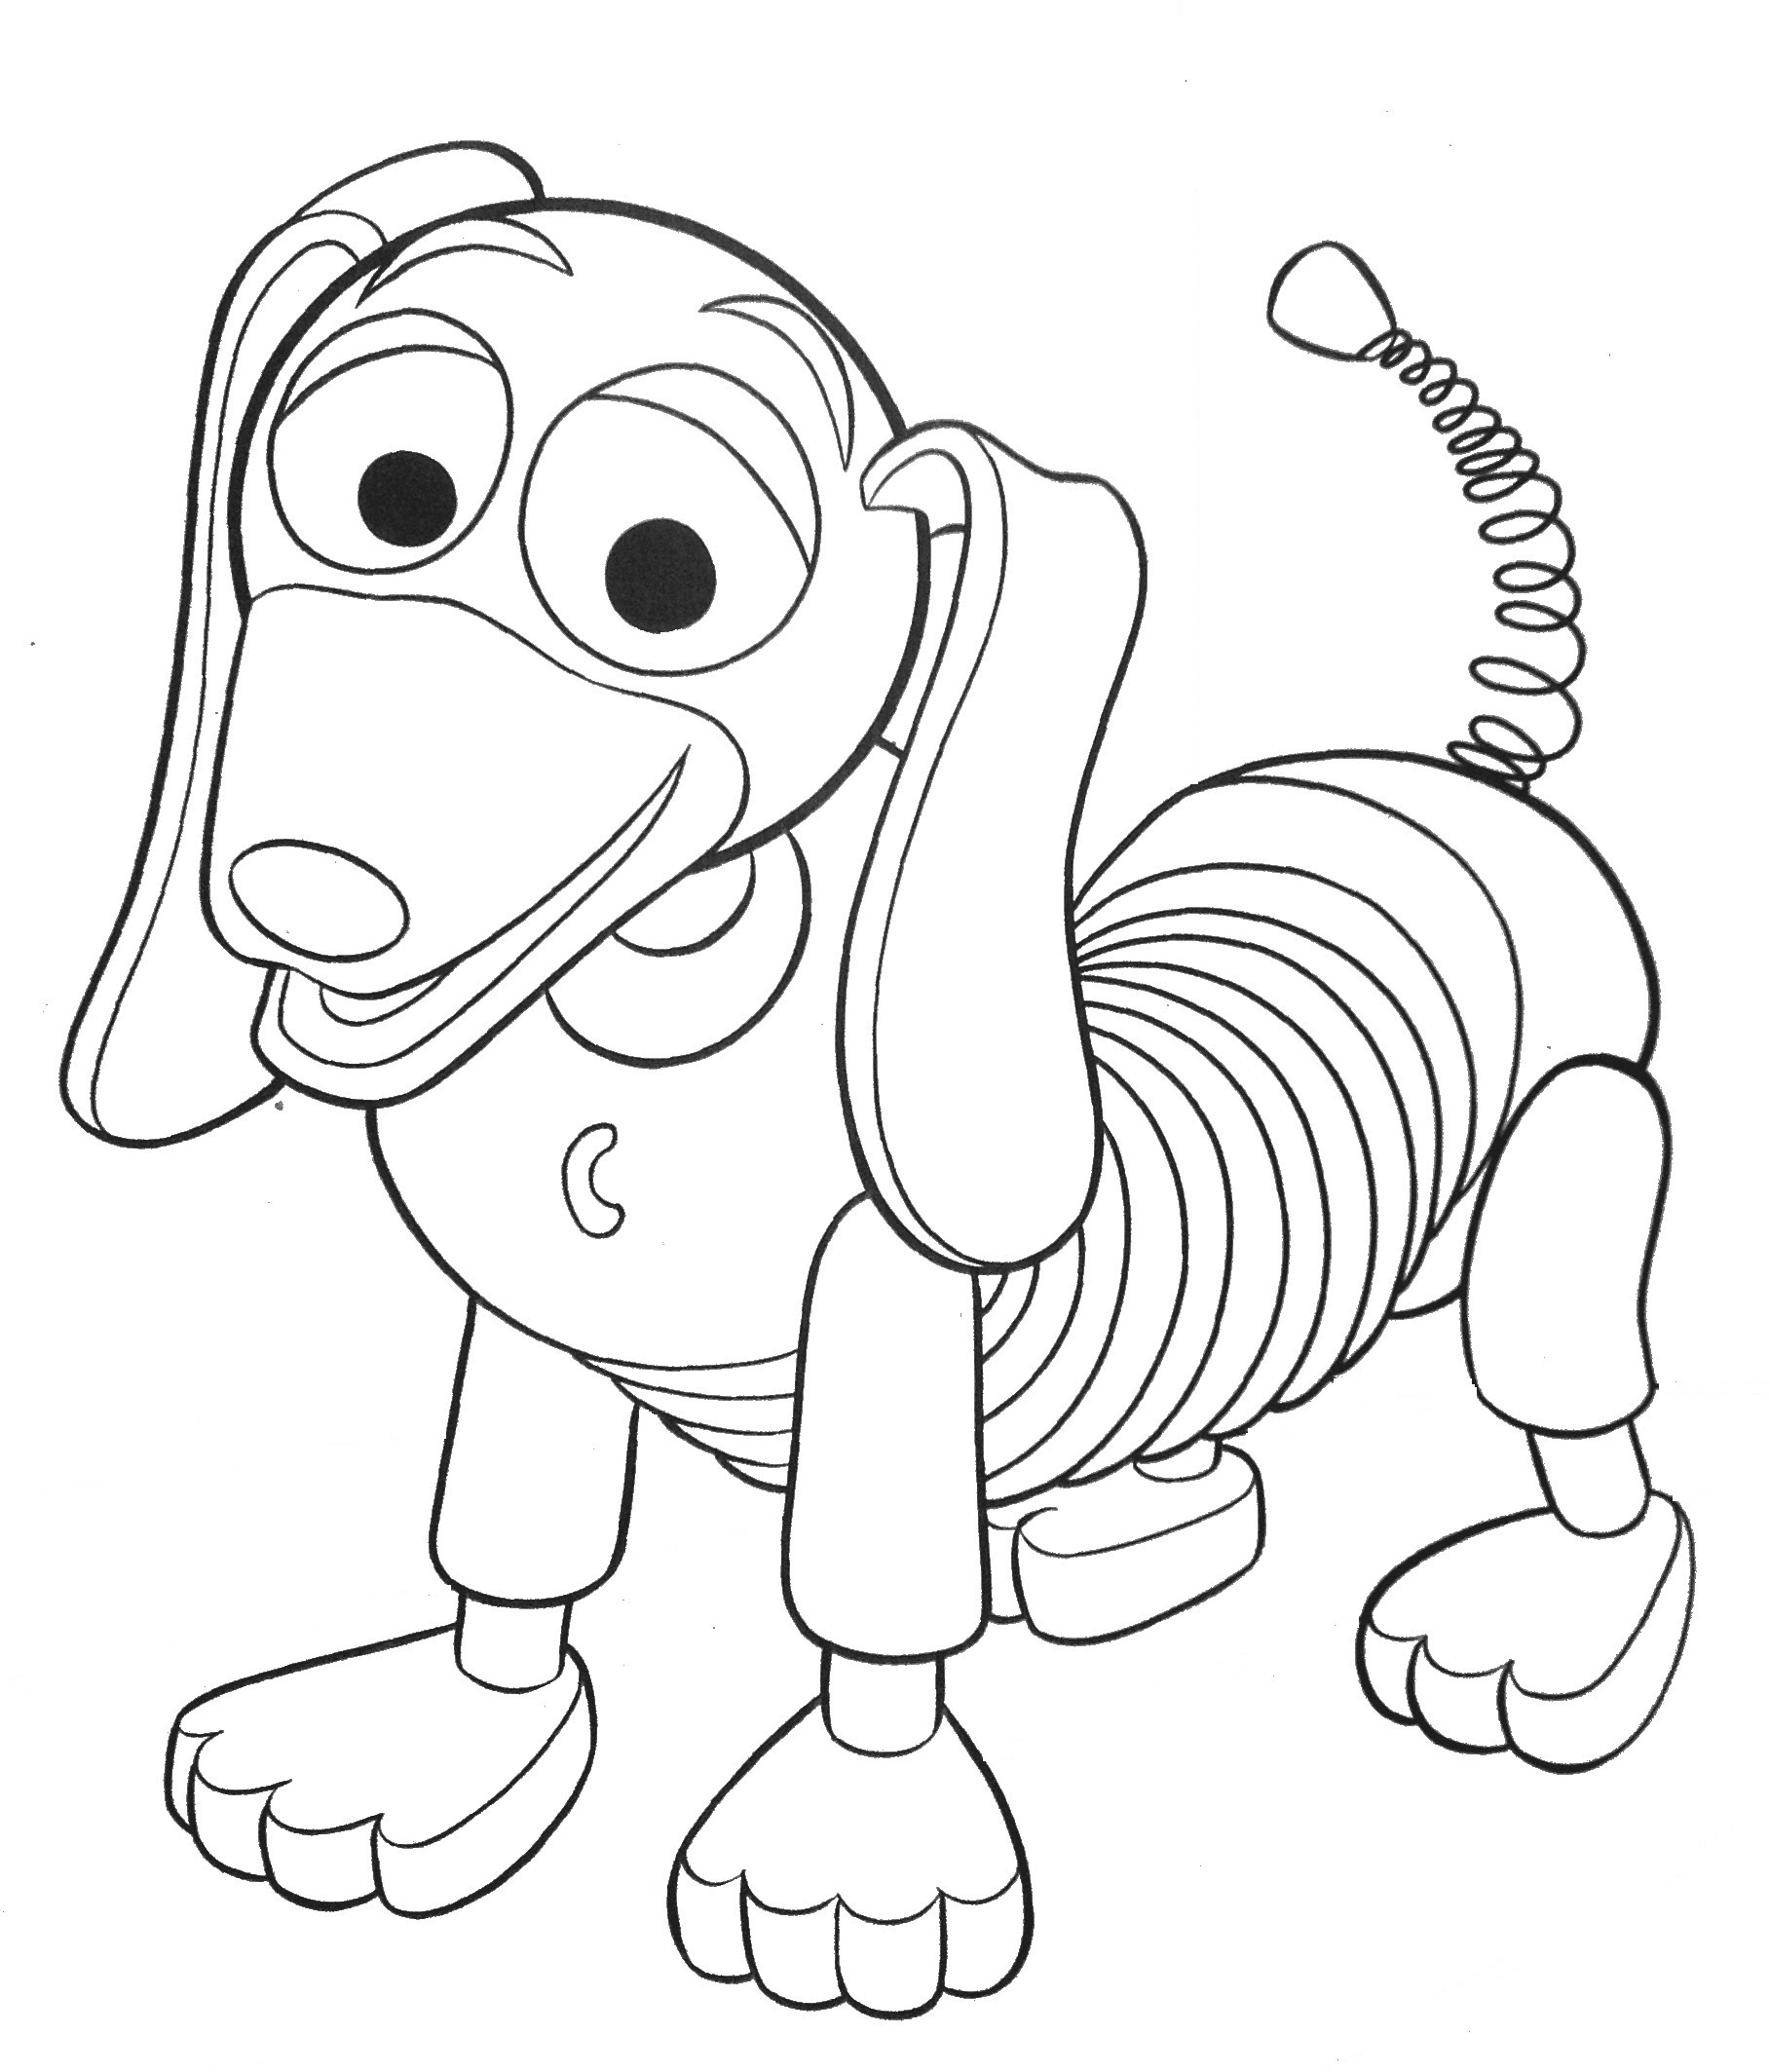 Toy Story Coloring Pages Woody at GetColorings.com | Free ...